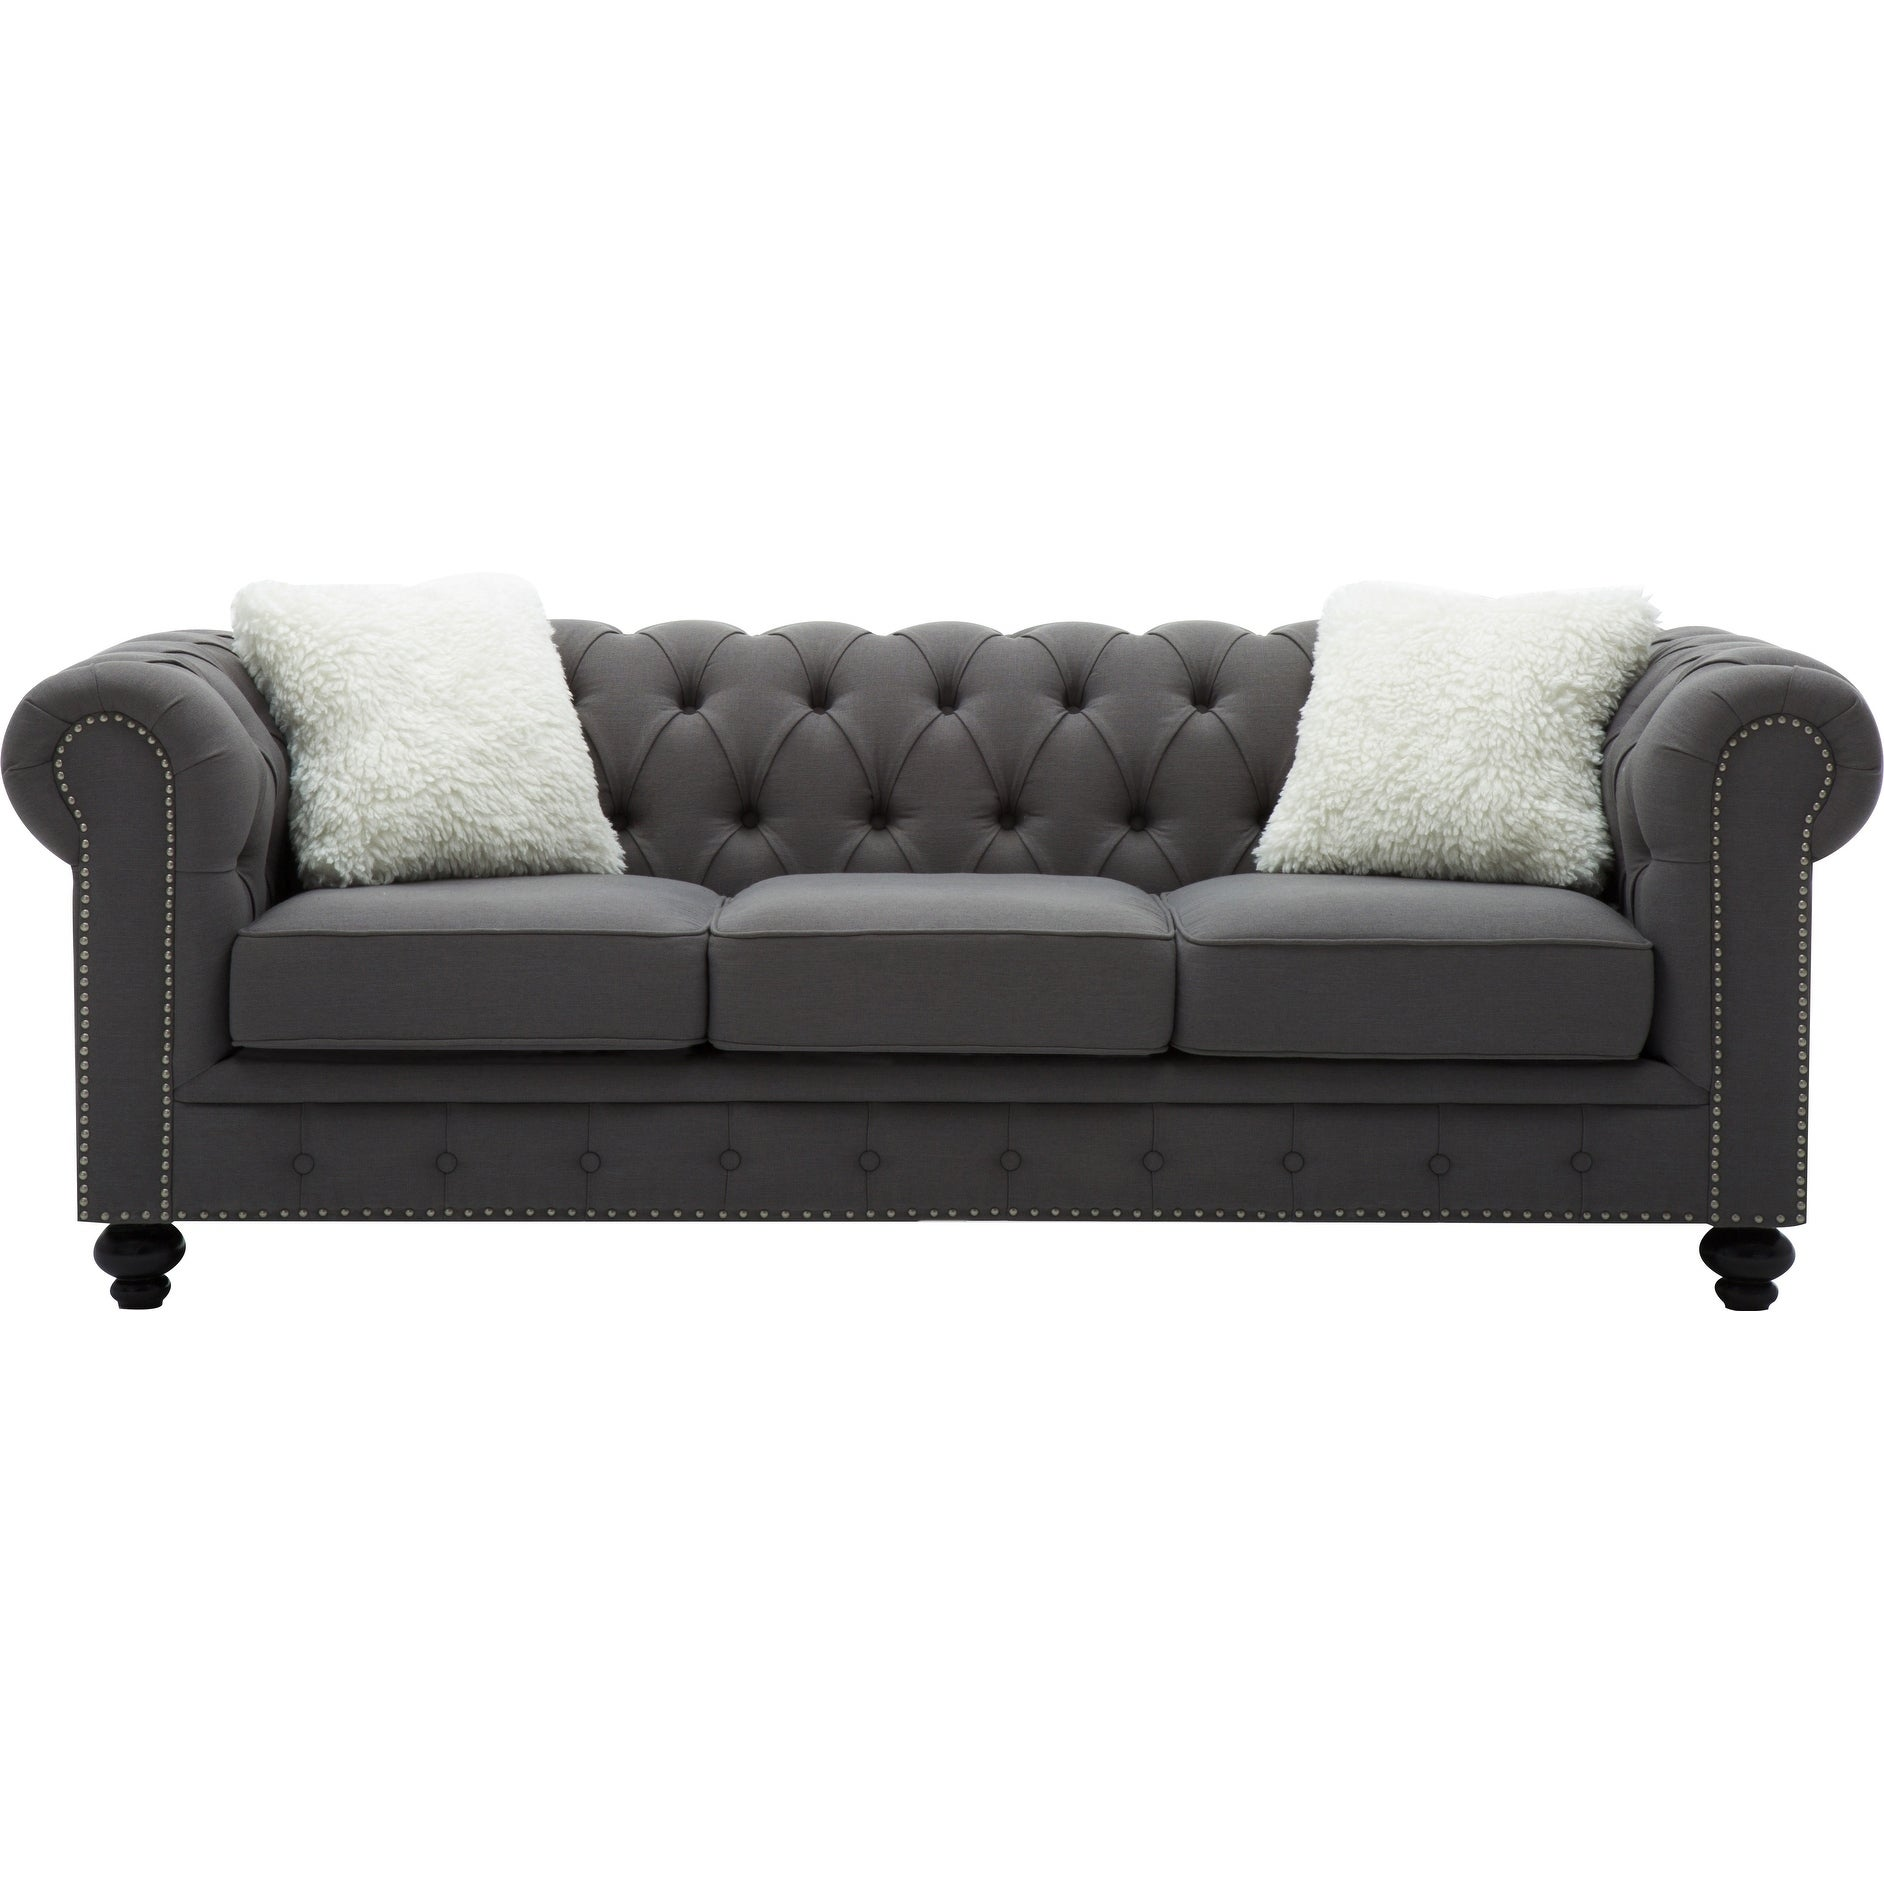 Best Quality Furniture Grey Chesterfield Sofa With Accent Pillows - Overstock - 20537796